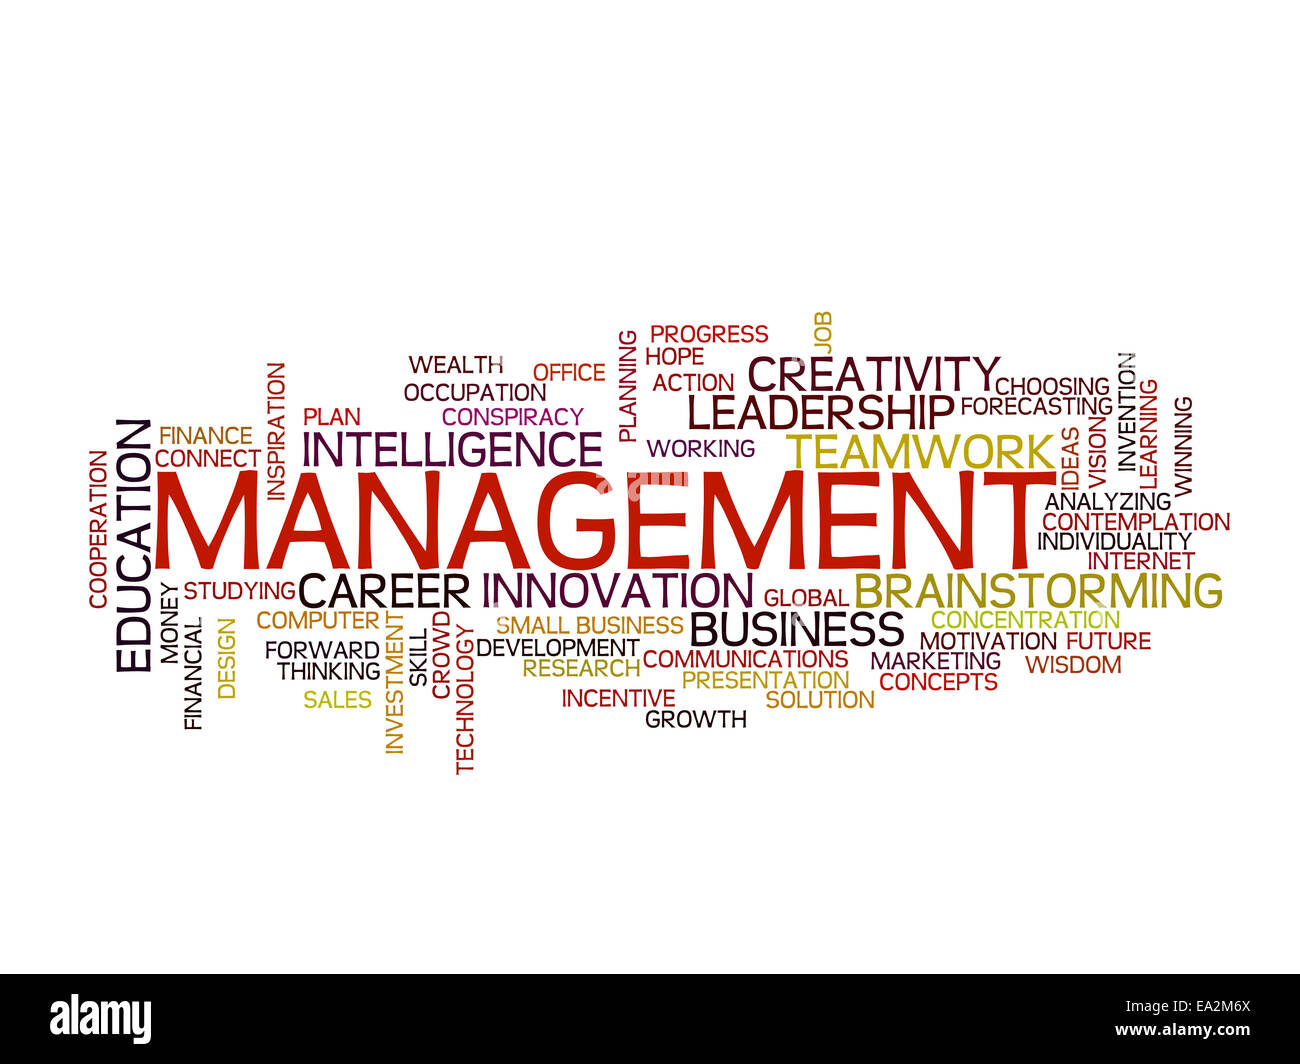 Management strategy concept word cloud - Stock Image